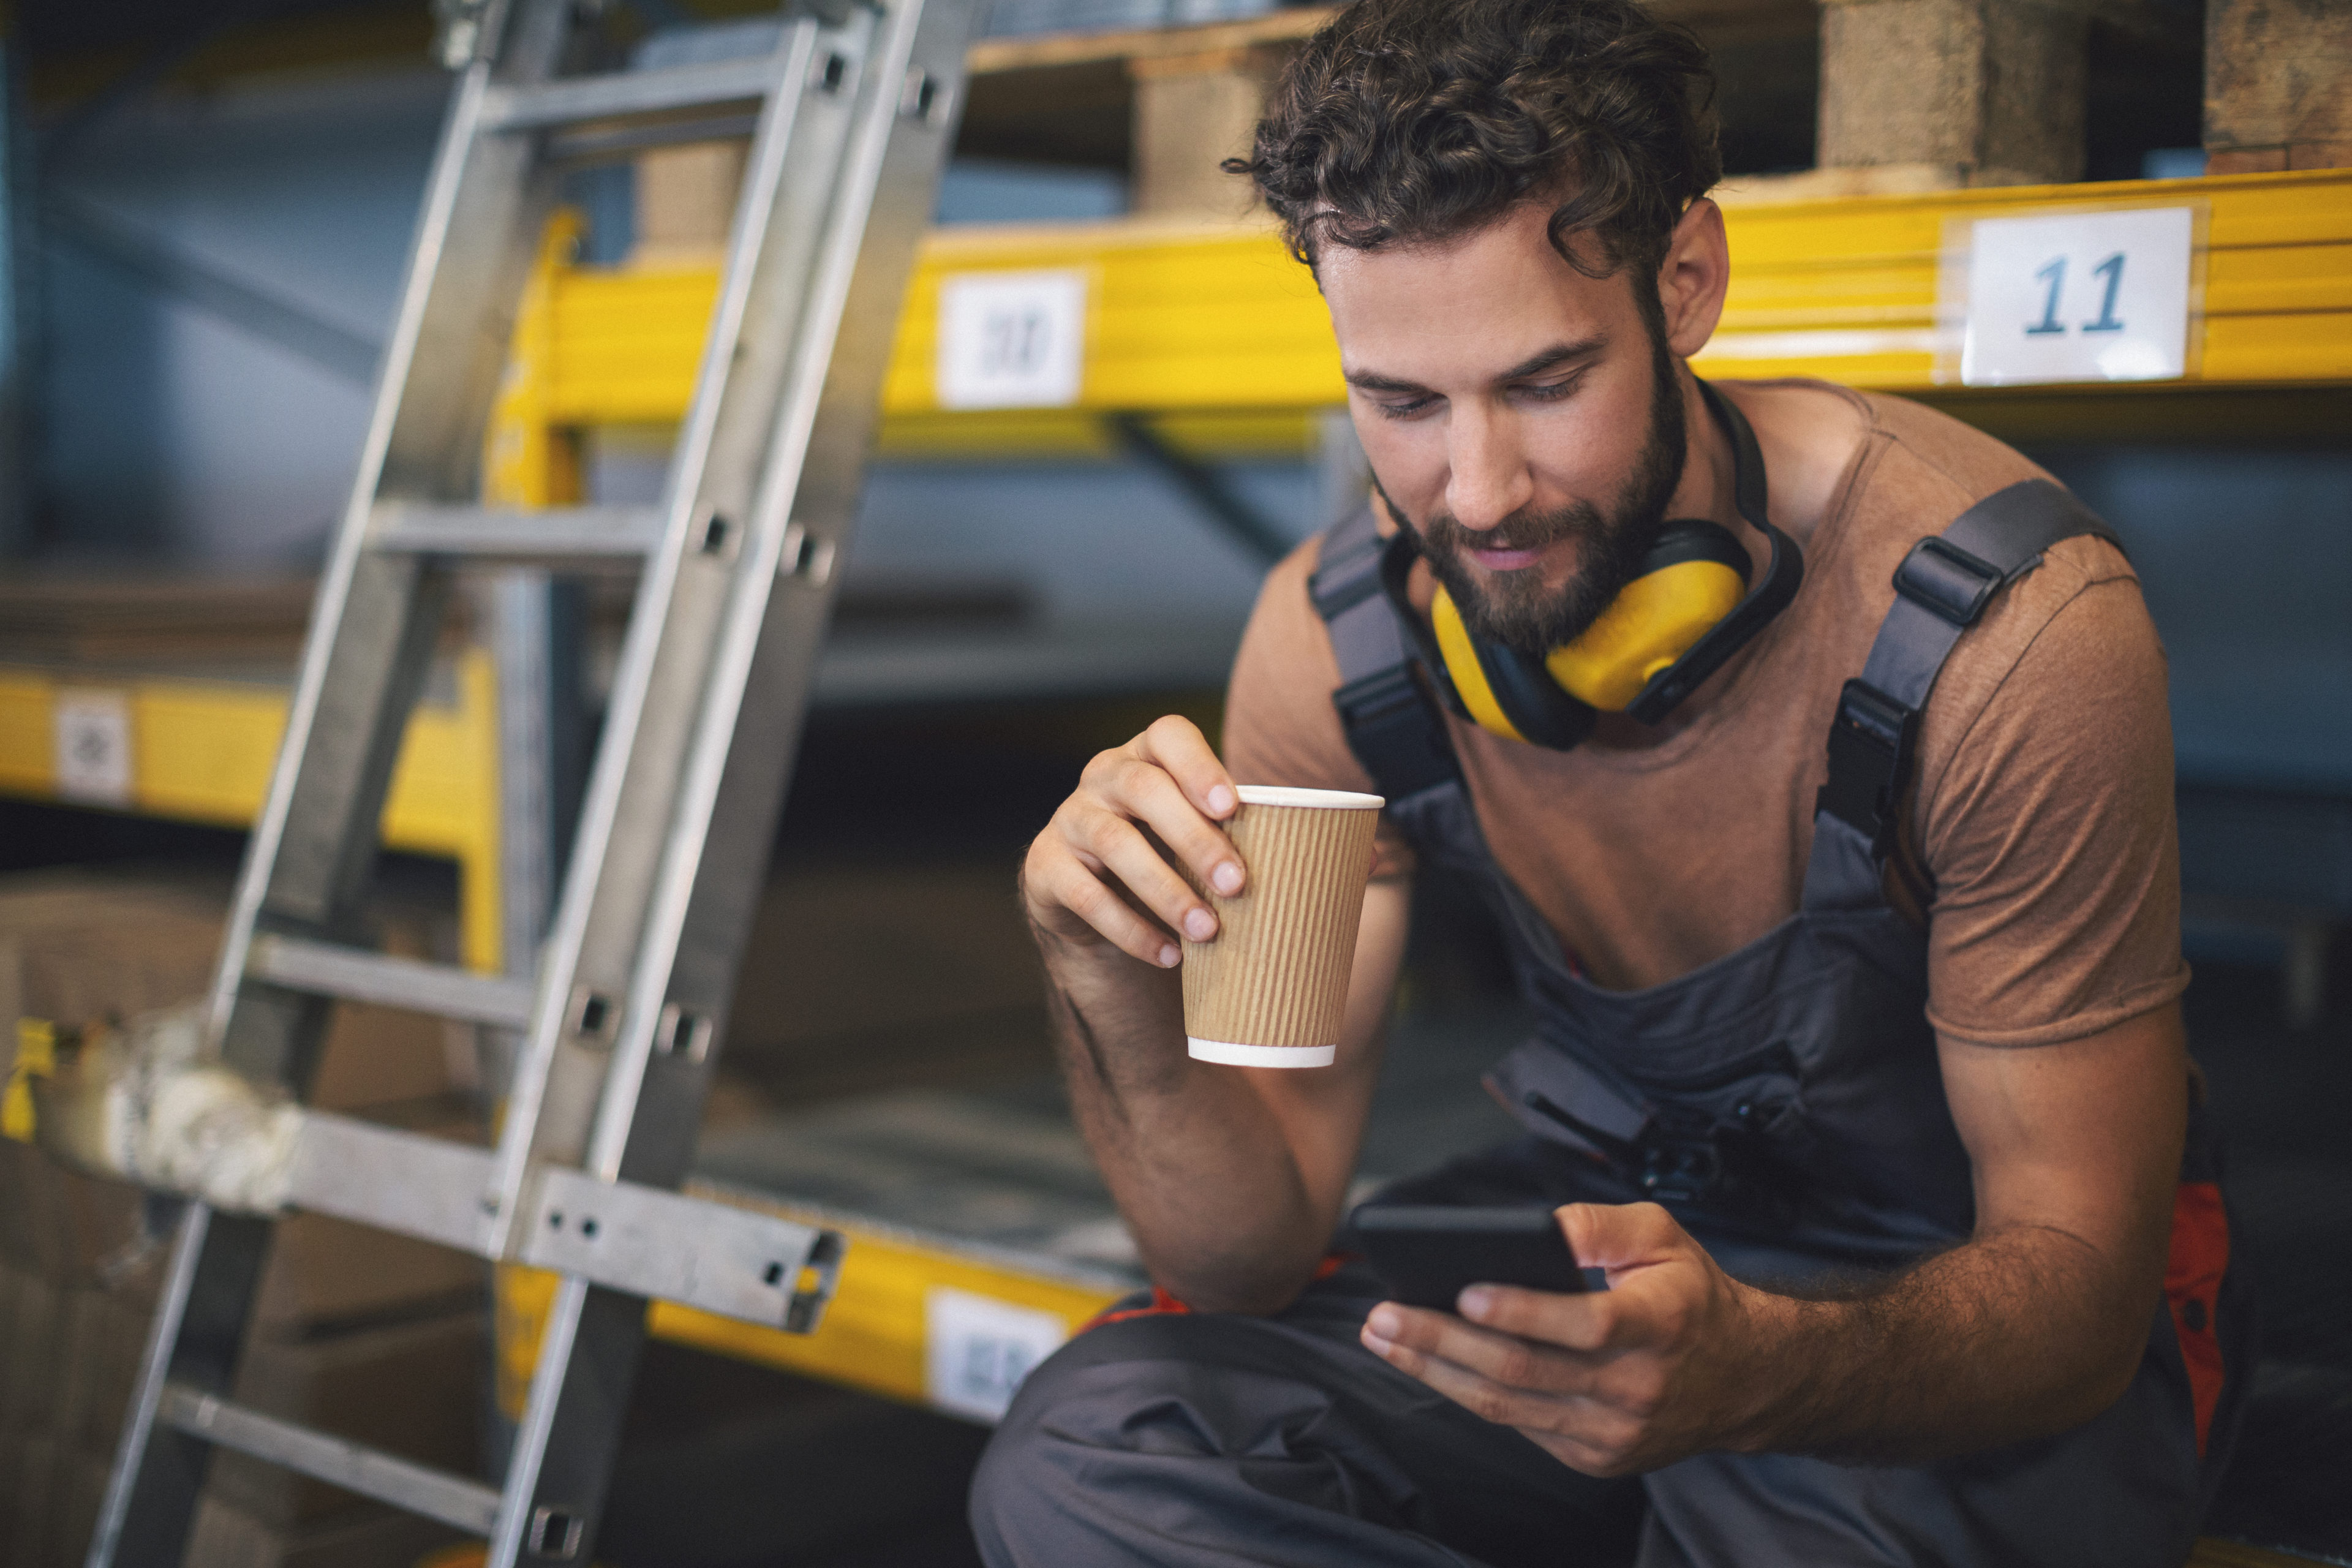 Young worker in the warehouse reviewing mobile training on his phone